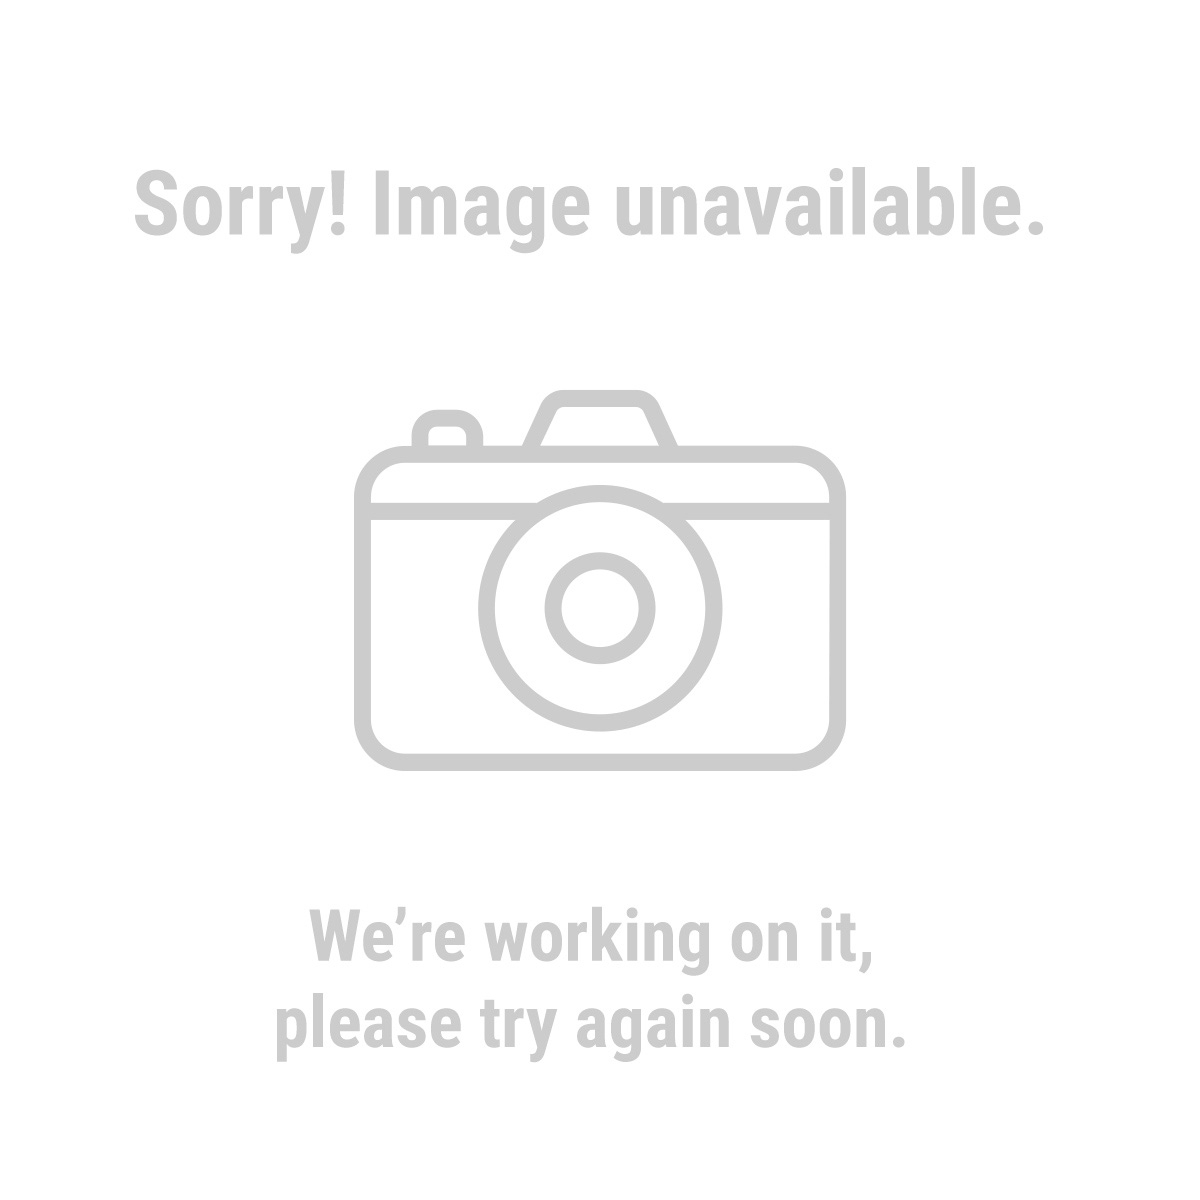 Circular cutting saw